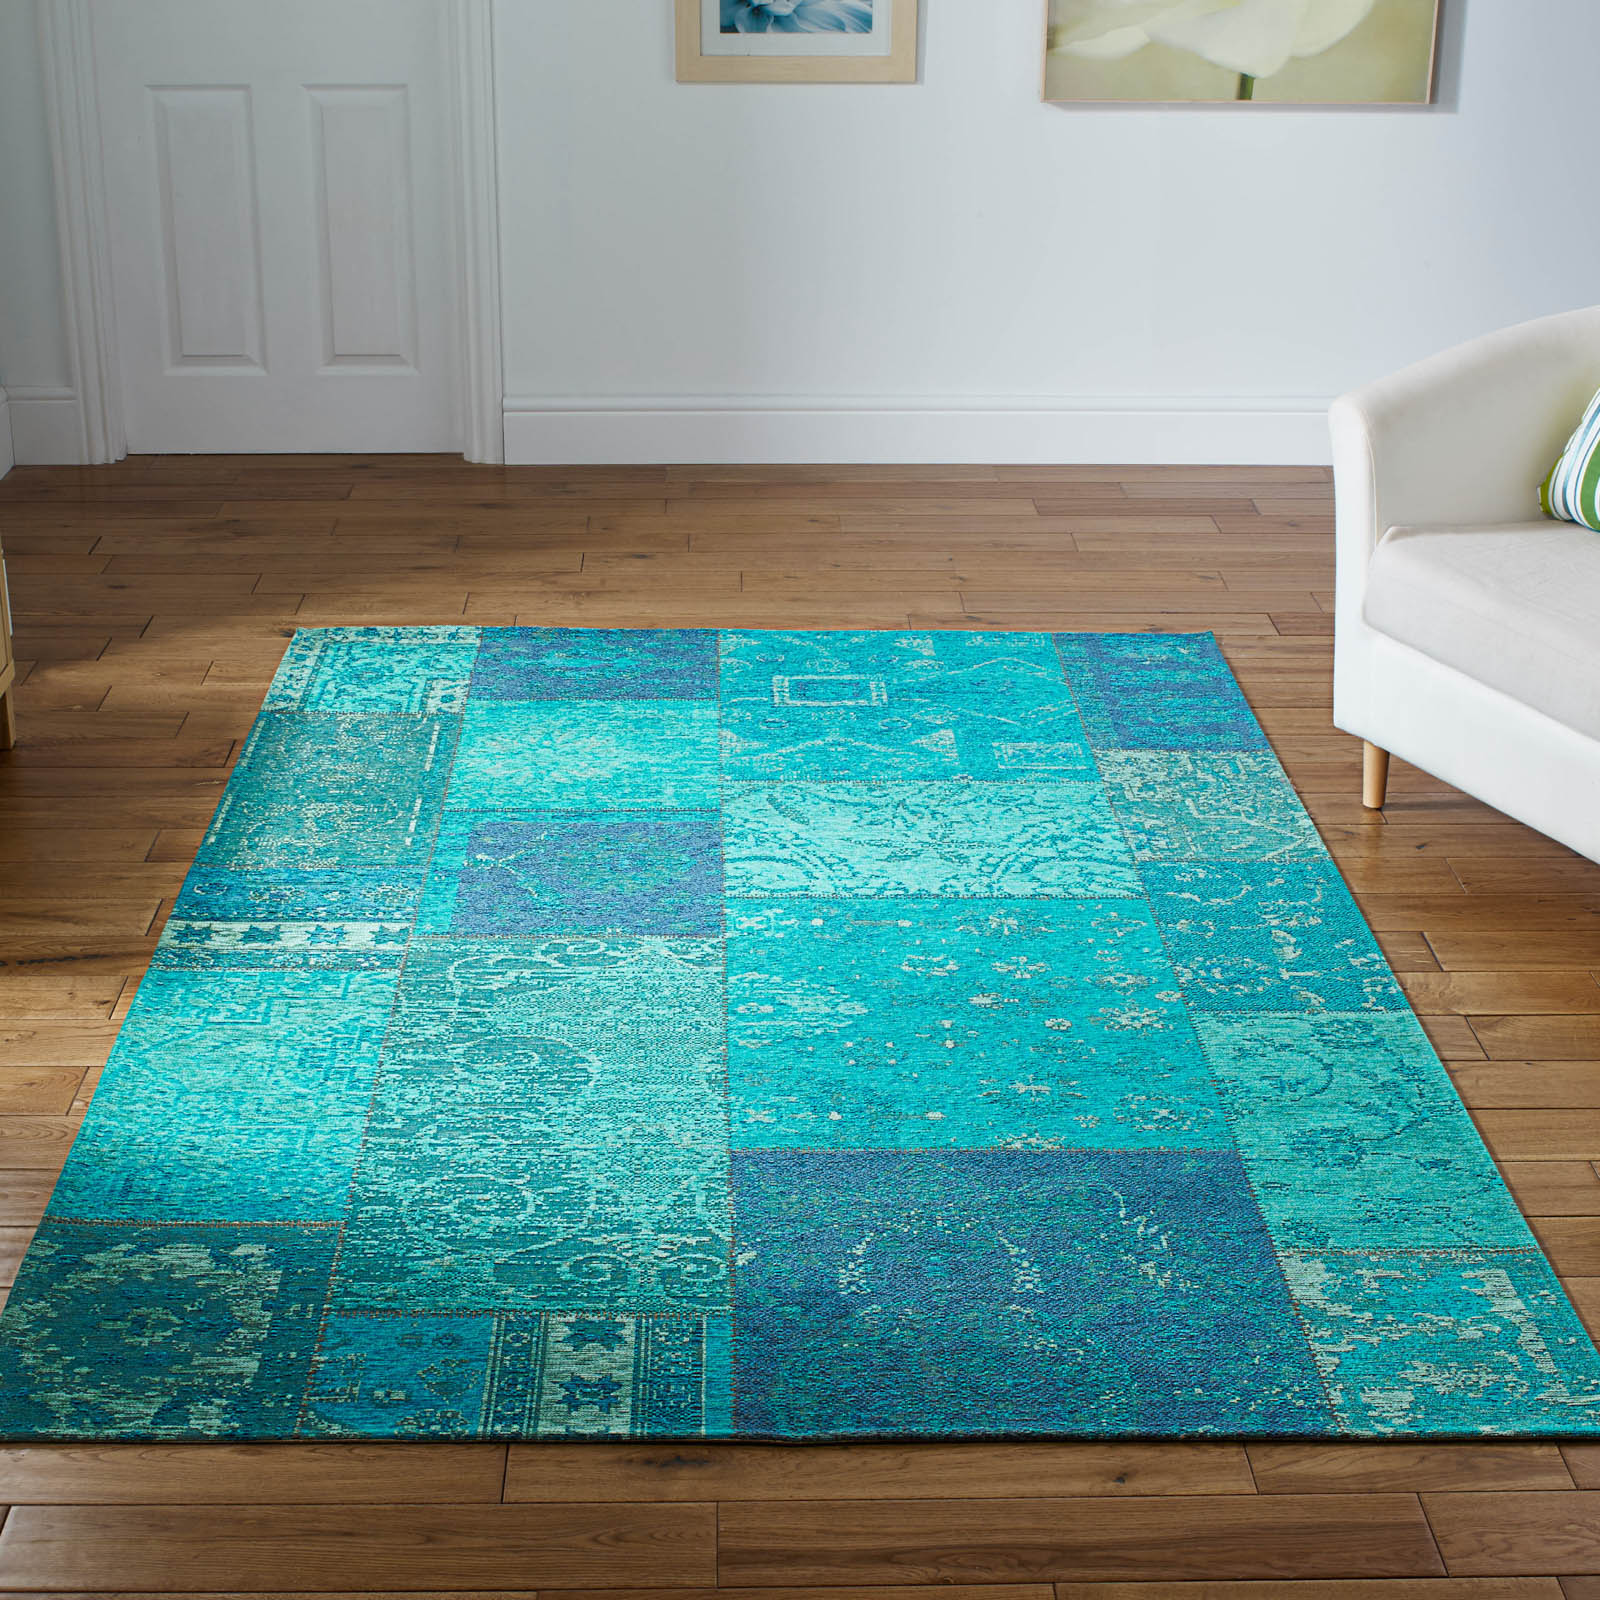 Renaissance Rugs 25 L in Turquoise